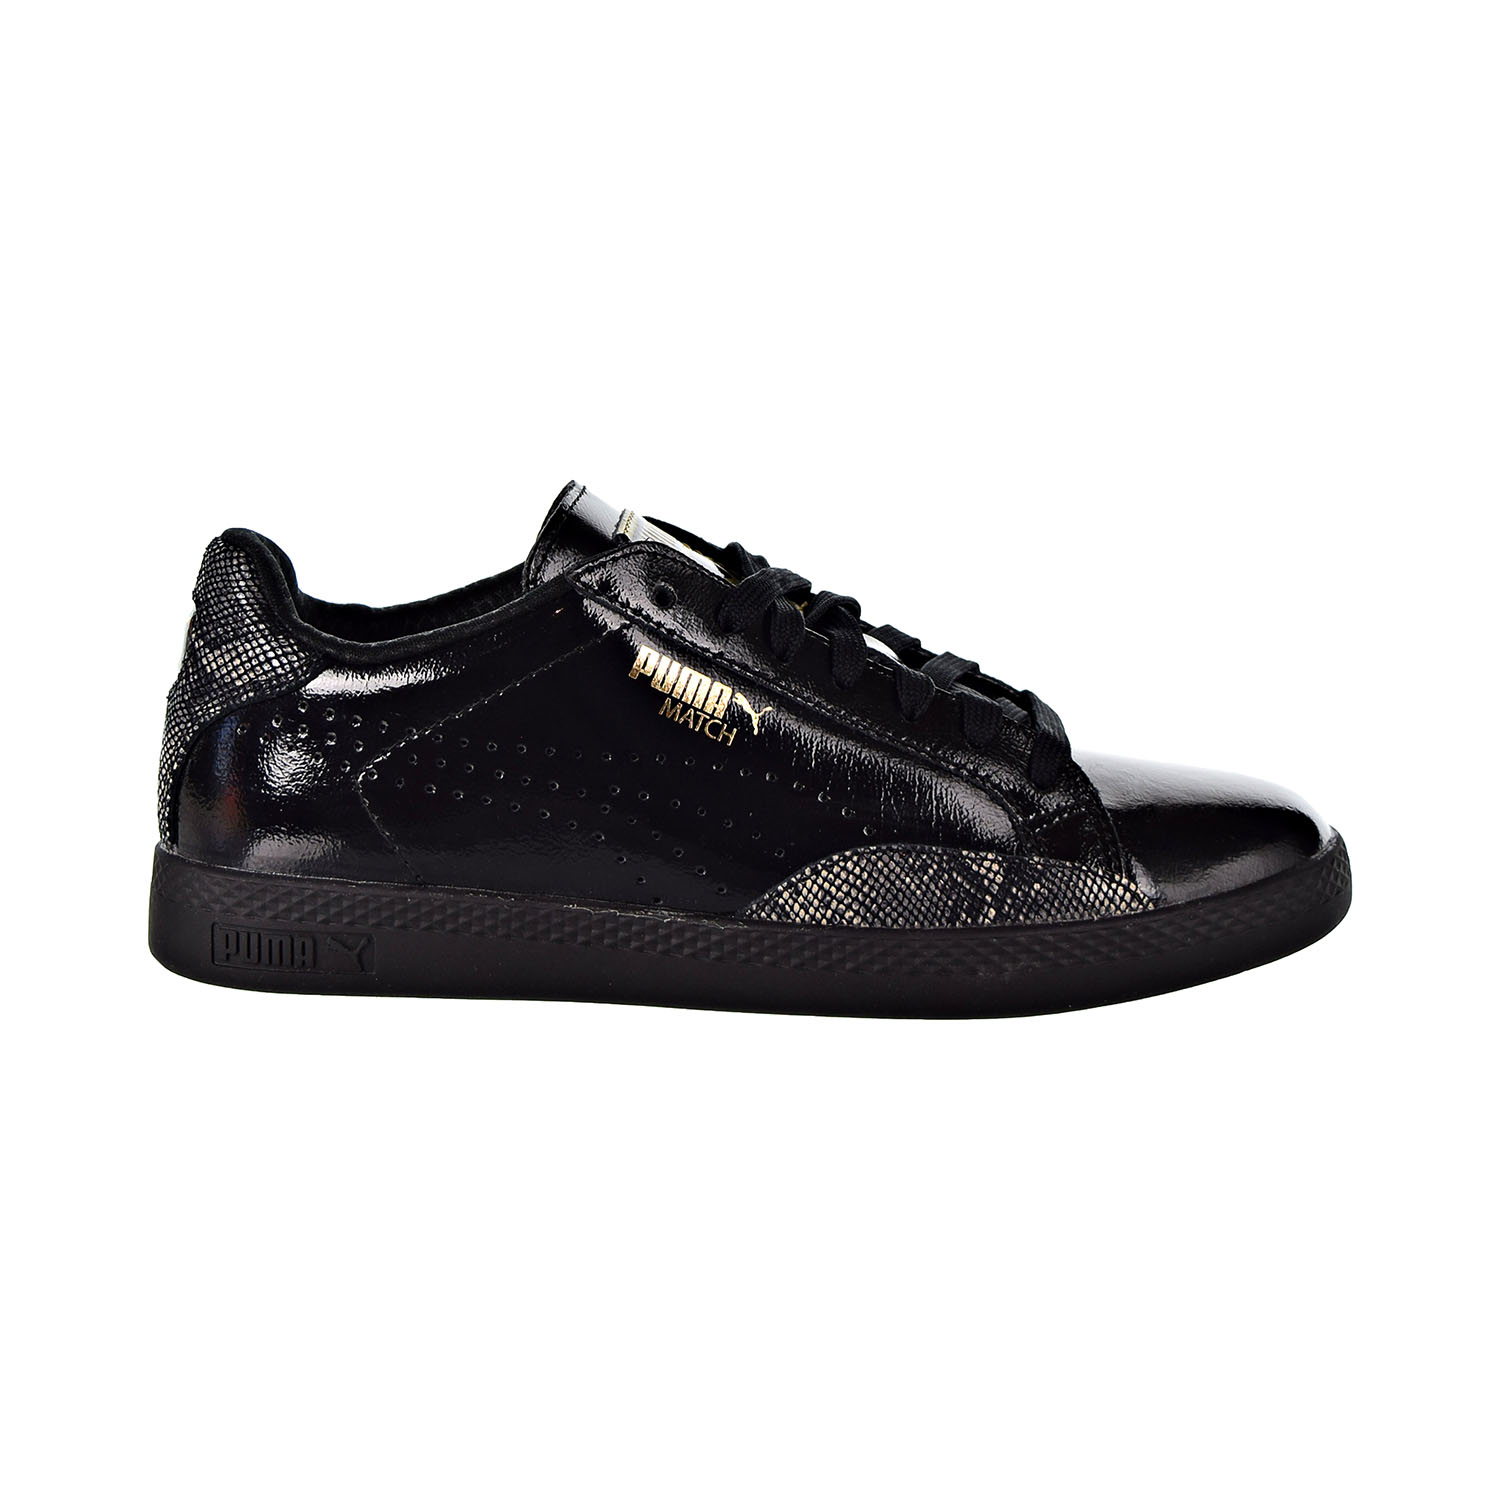 Details about Puma Match Lo Pnt Snake Women's Shoes Puma Black Gold 363047 02